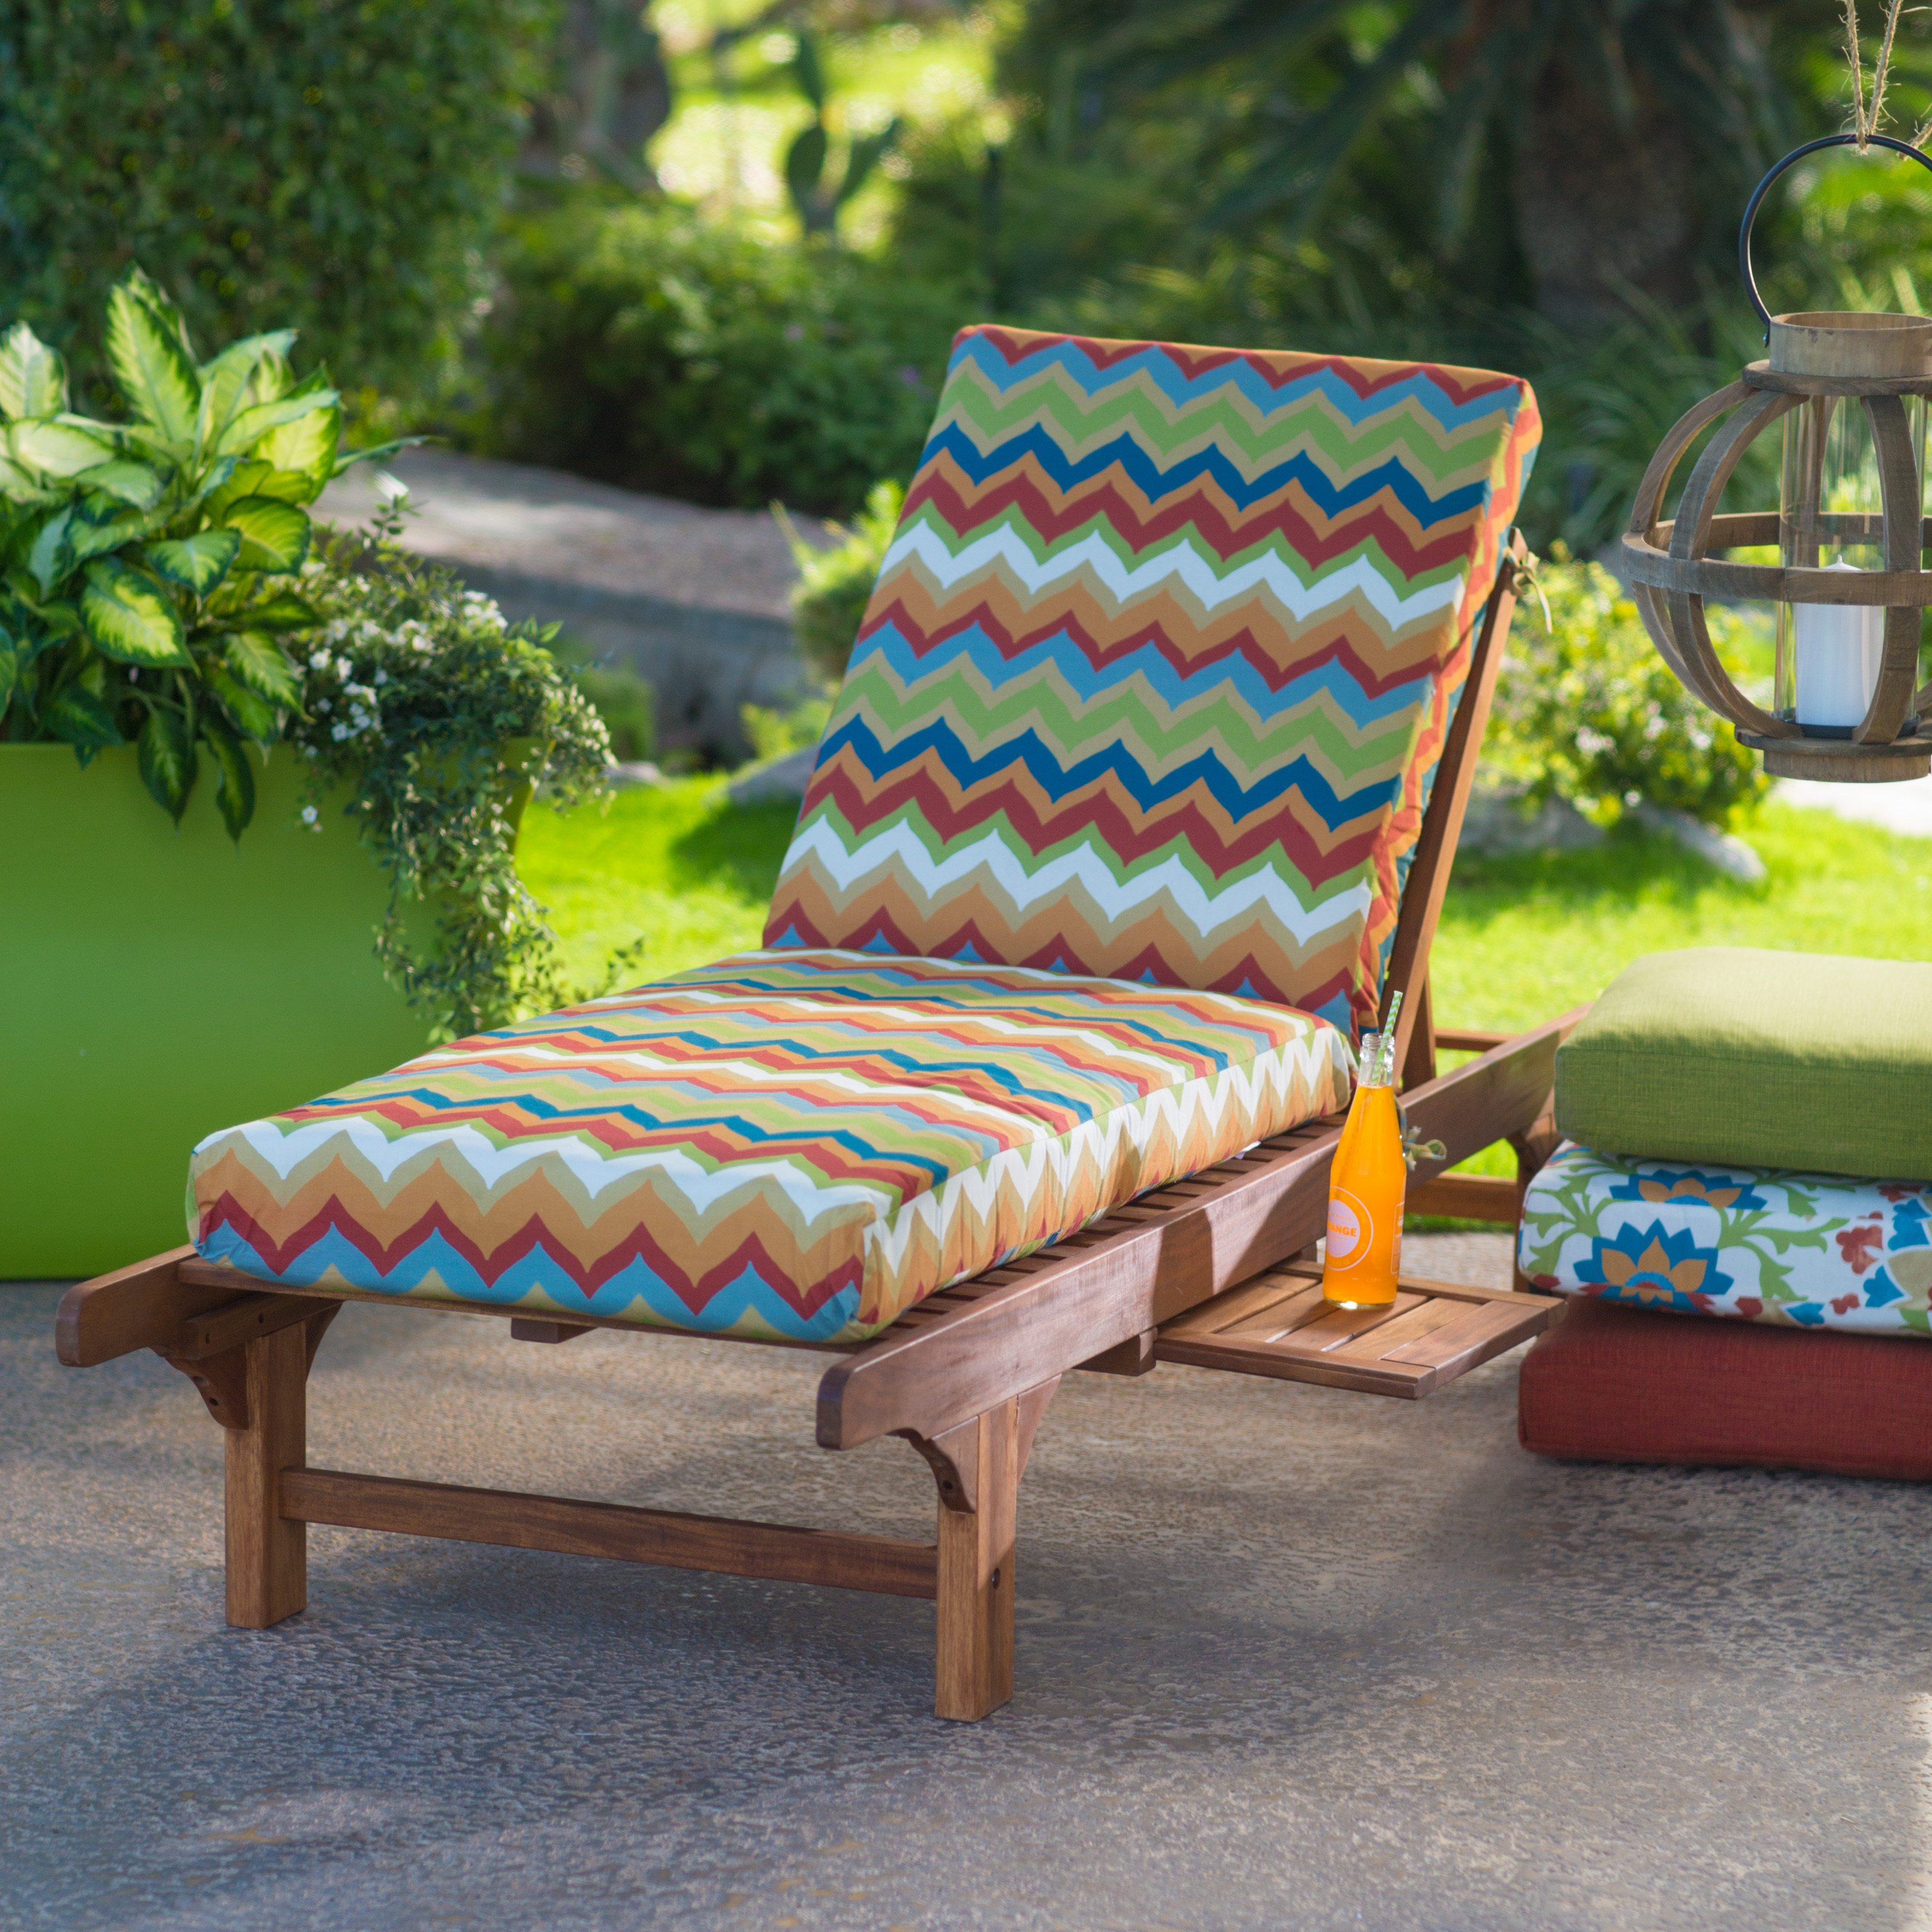 Coral Coast Cantara Outdoor Chaise Lounge Cushion - Boxed ...